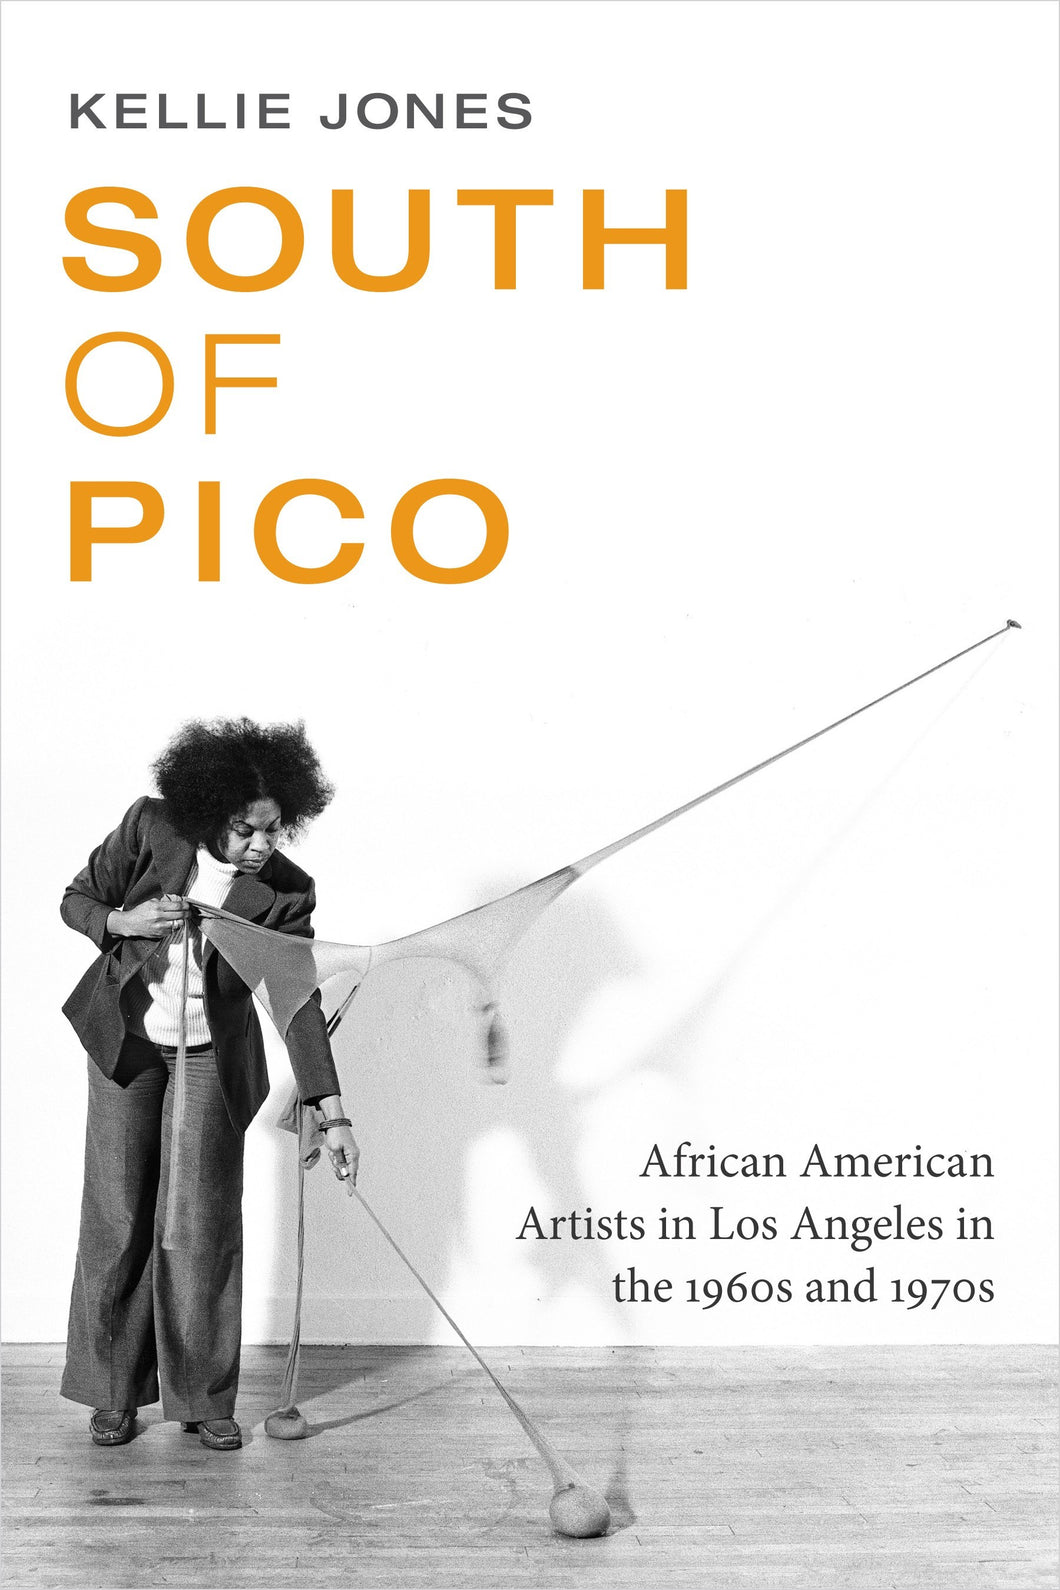 South of Pico: African American Artists in Los Angeles in the 1960s and 1970s by Kelli Jones